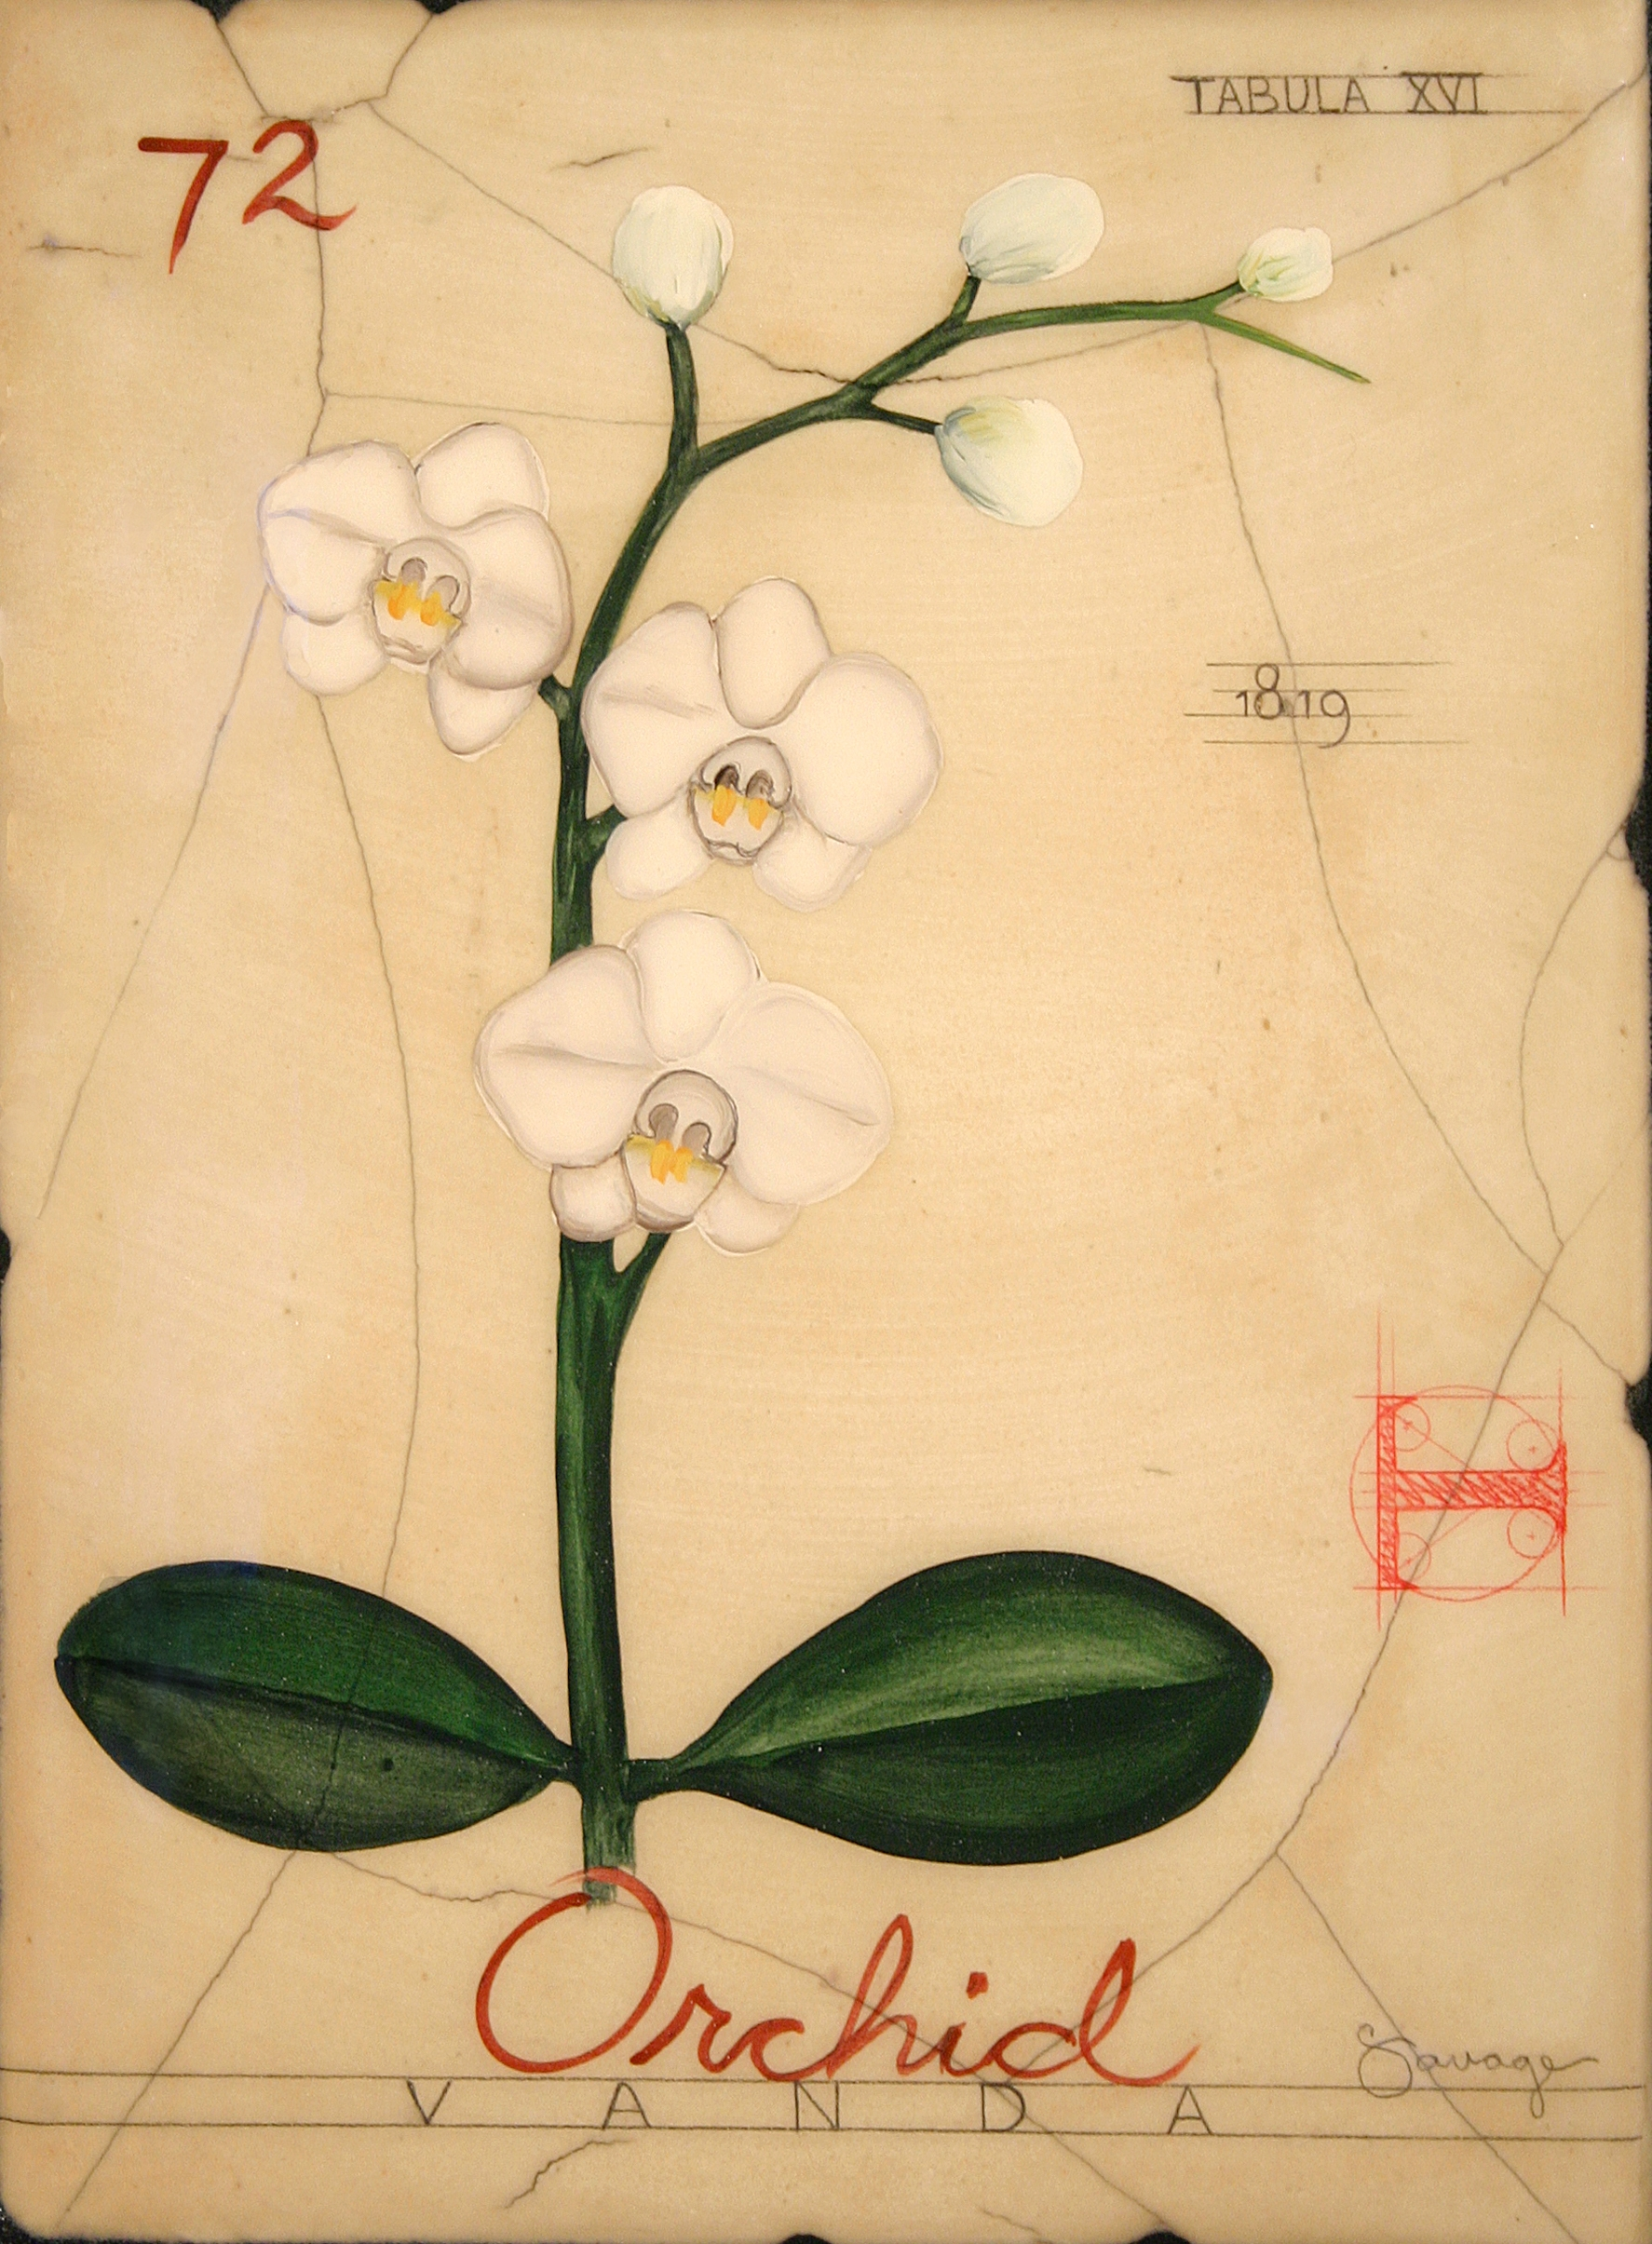 No. 72 Orchid